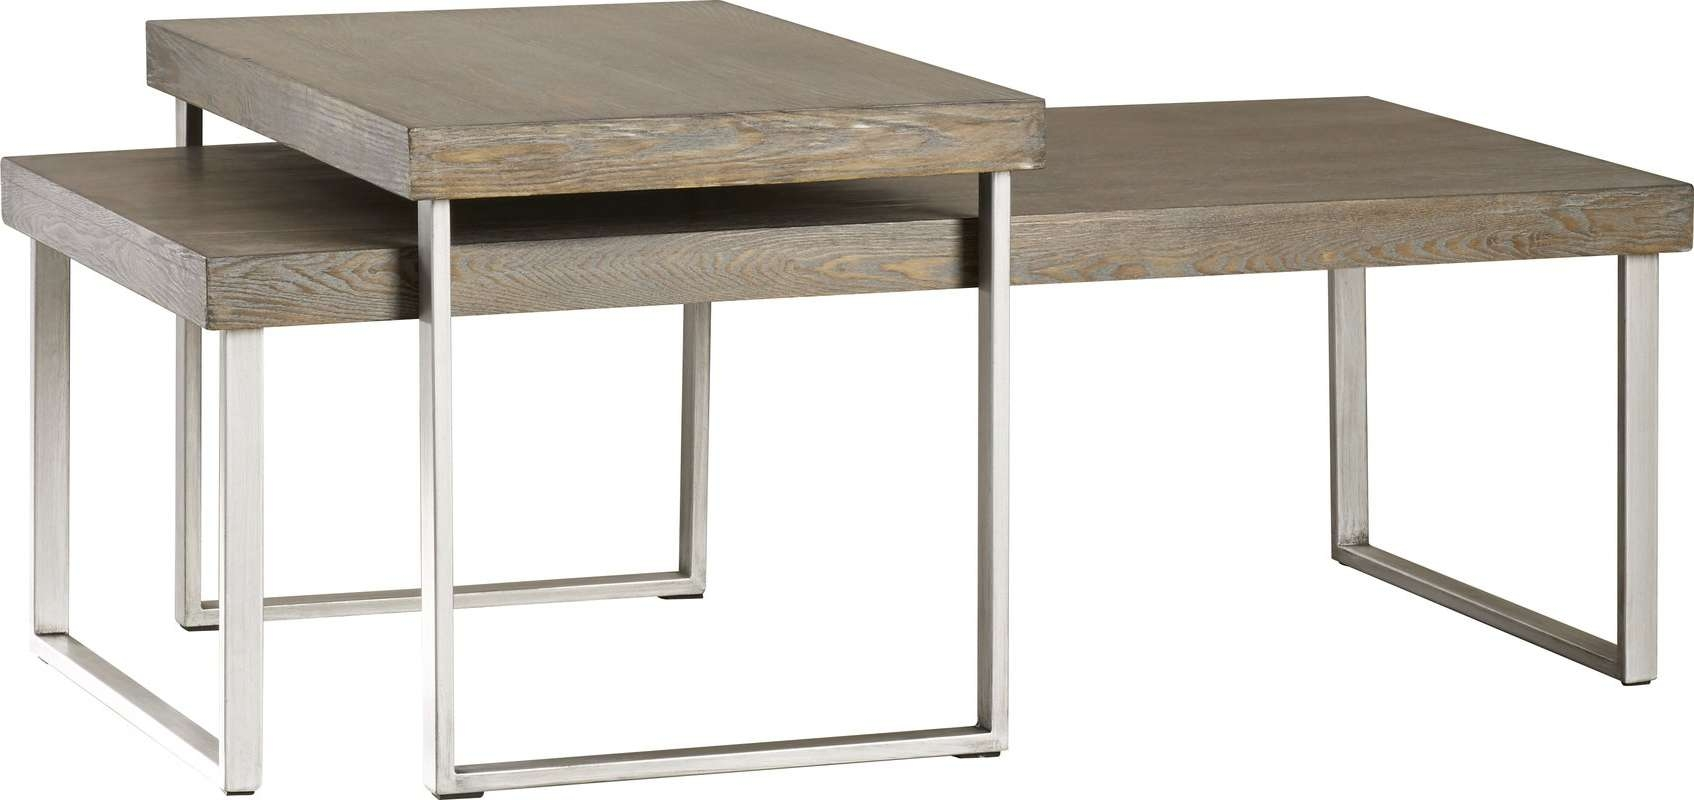 Recent 2 Piece Coffee Table Sets Throughout Mercury Row Asine 2 Piece Coffee Table Set & Reviews (View 10 of 20)